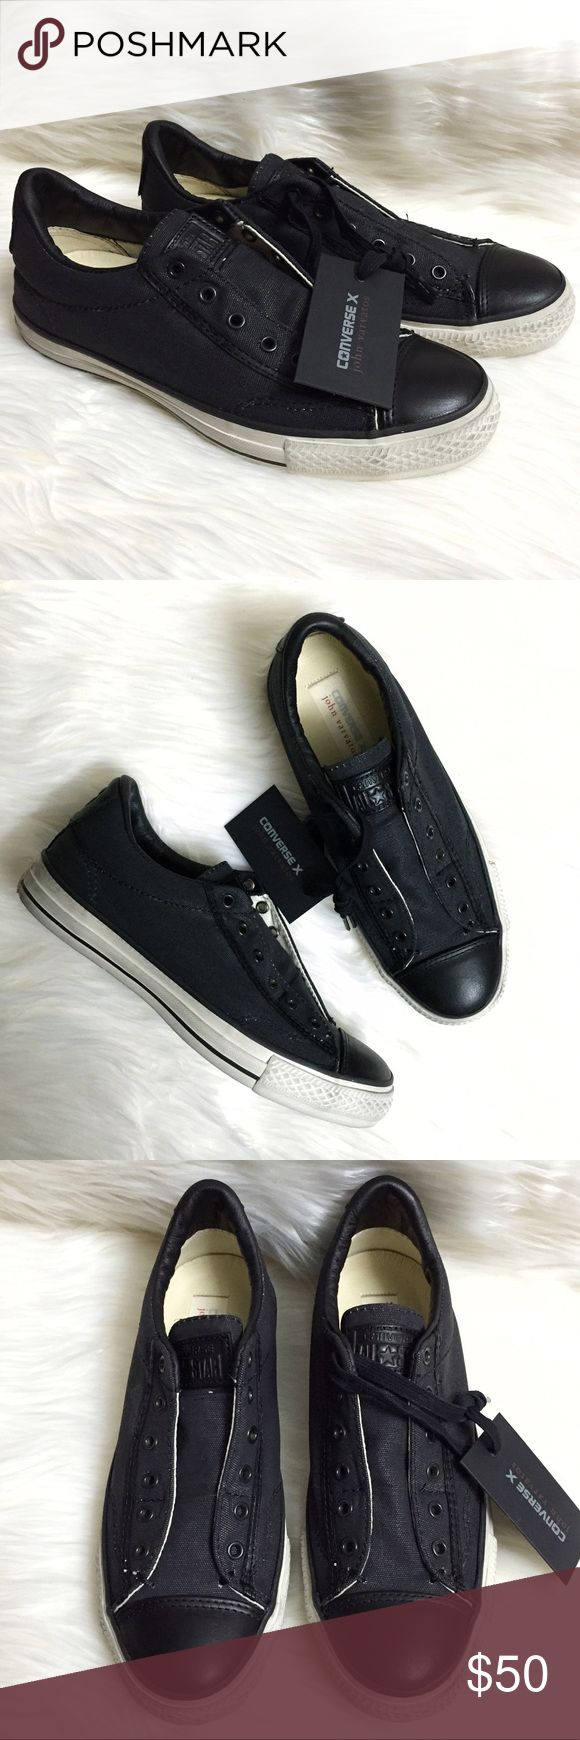 John varvatos leather driving gloves - Converse John Varvatos Chuck Taylor Black Sneakers Brand New With Dust Bag And Box Missing